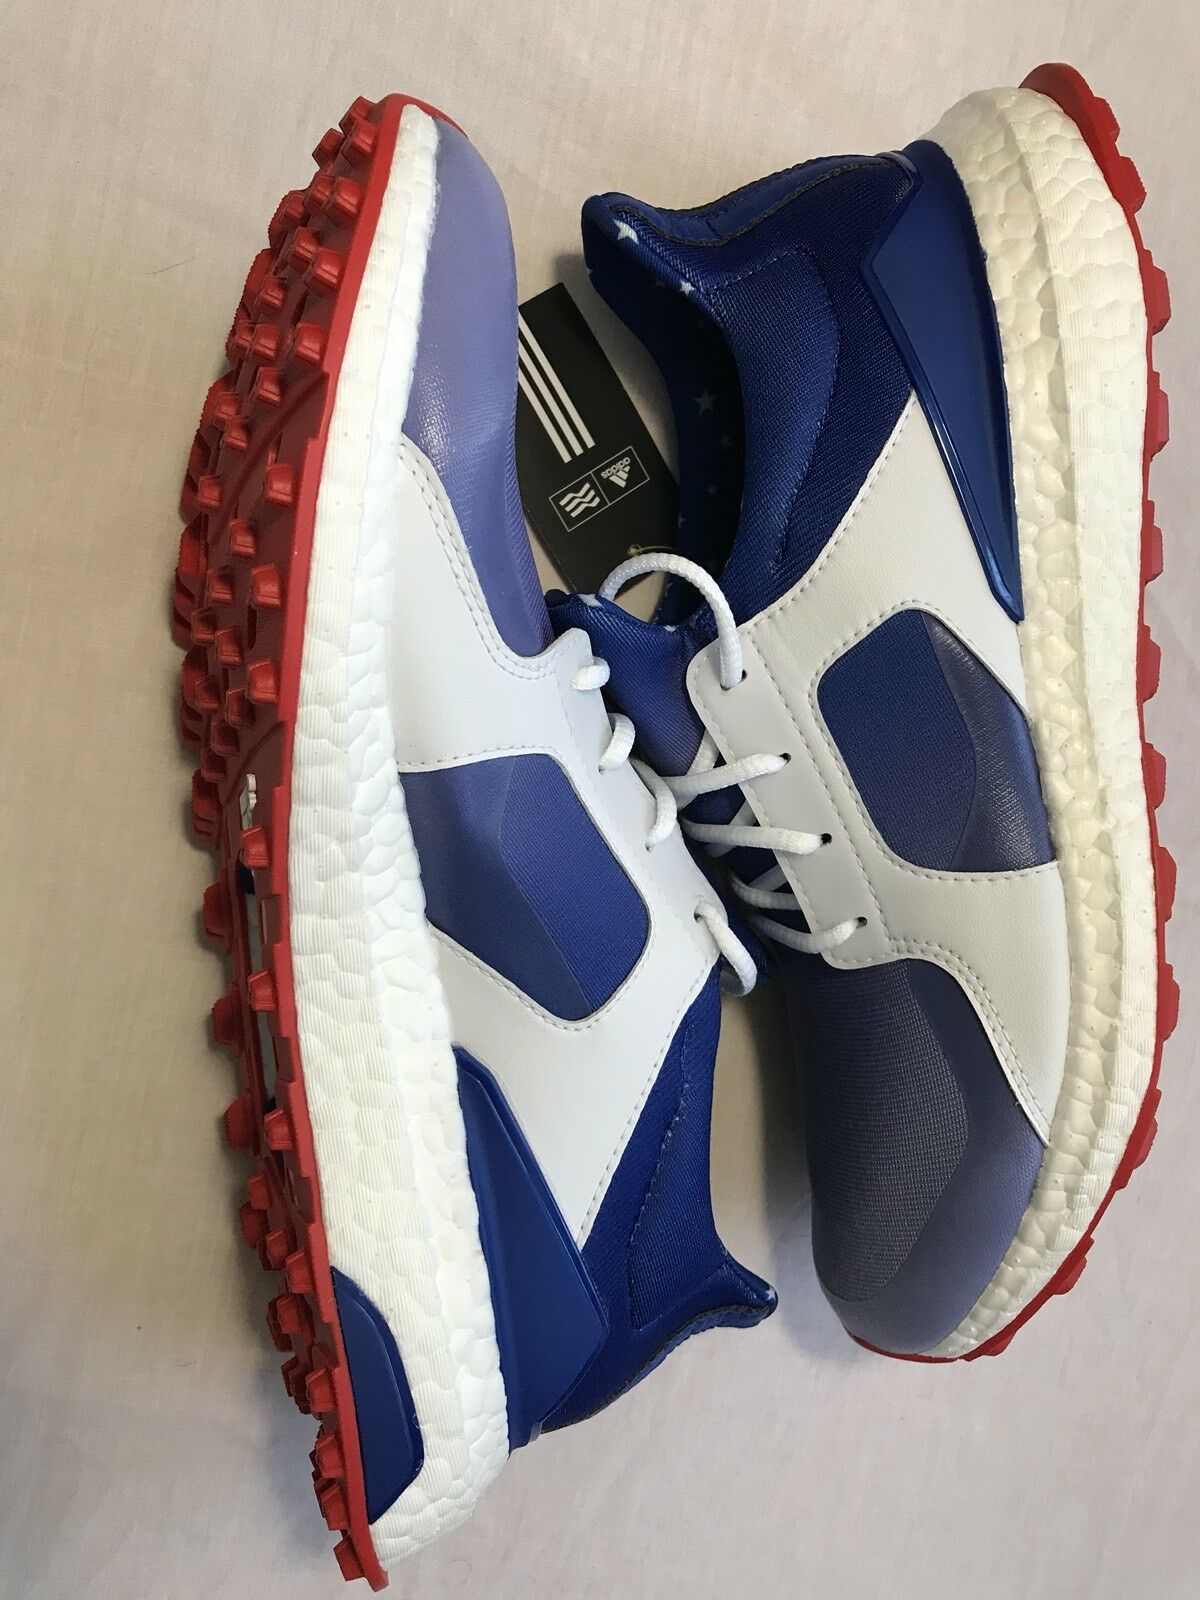 Adidas Women's Climacross Climacross Climacross Boost US Open Golf Shoes Red/White/Blue Q44986 Sz.9 4d1537